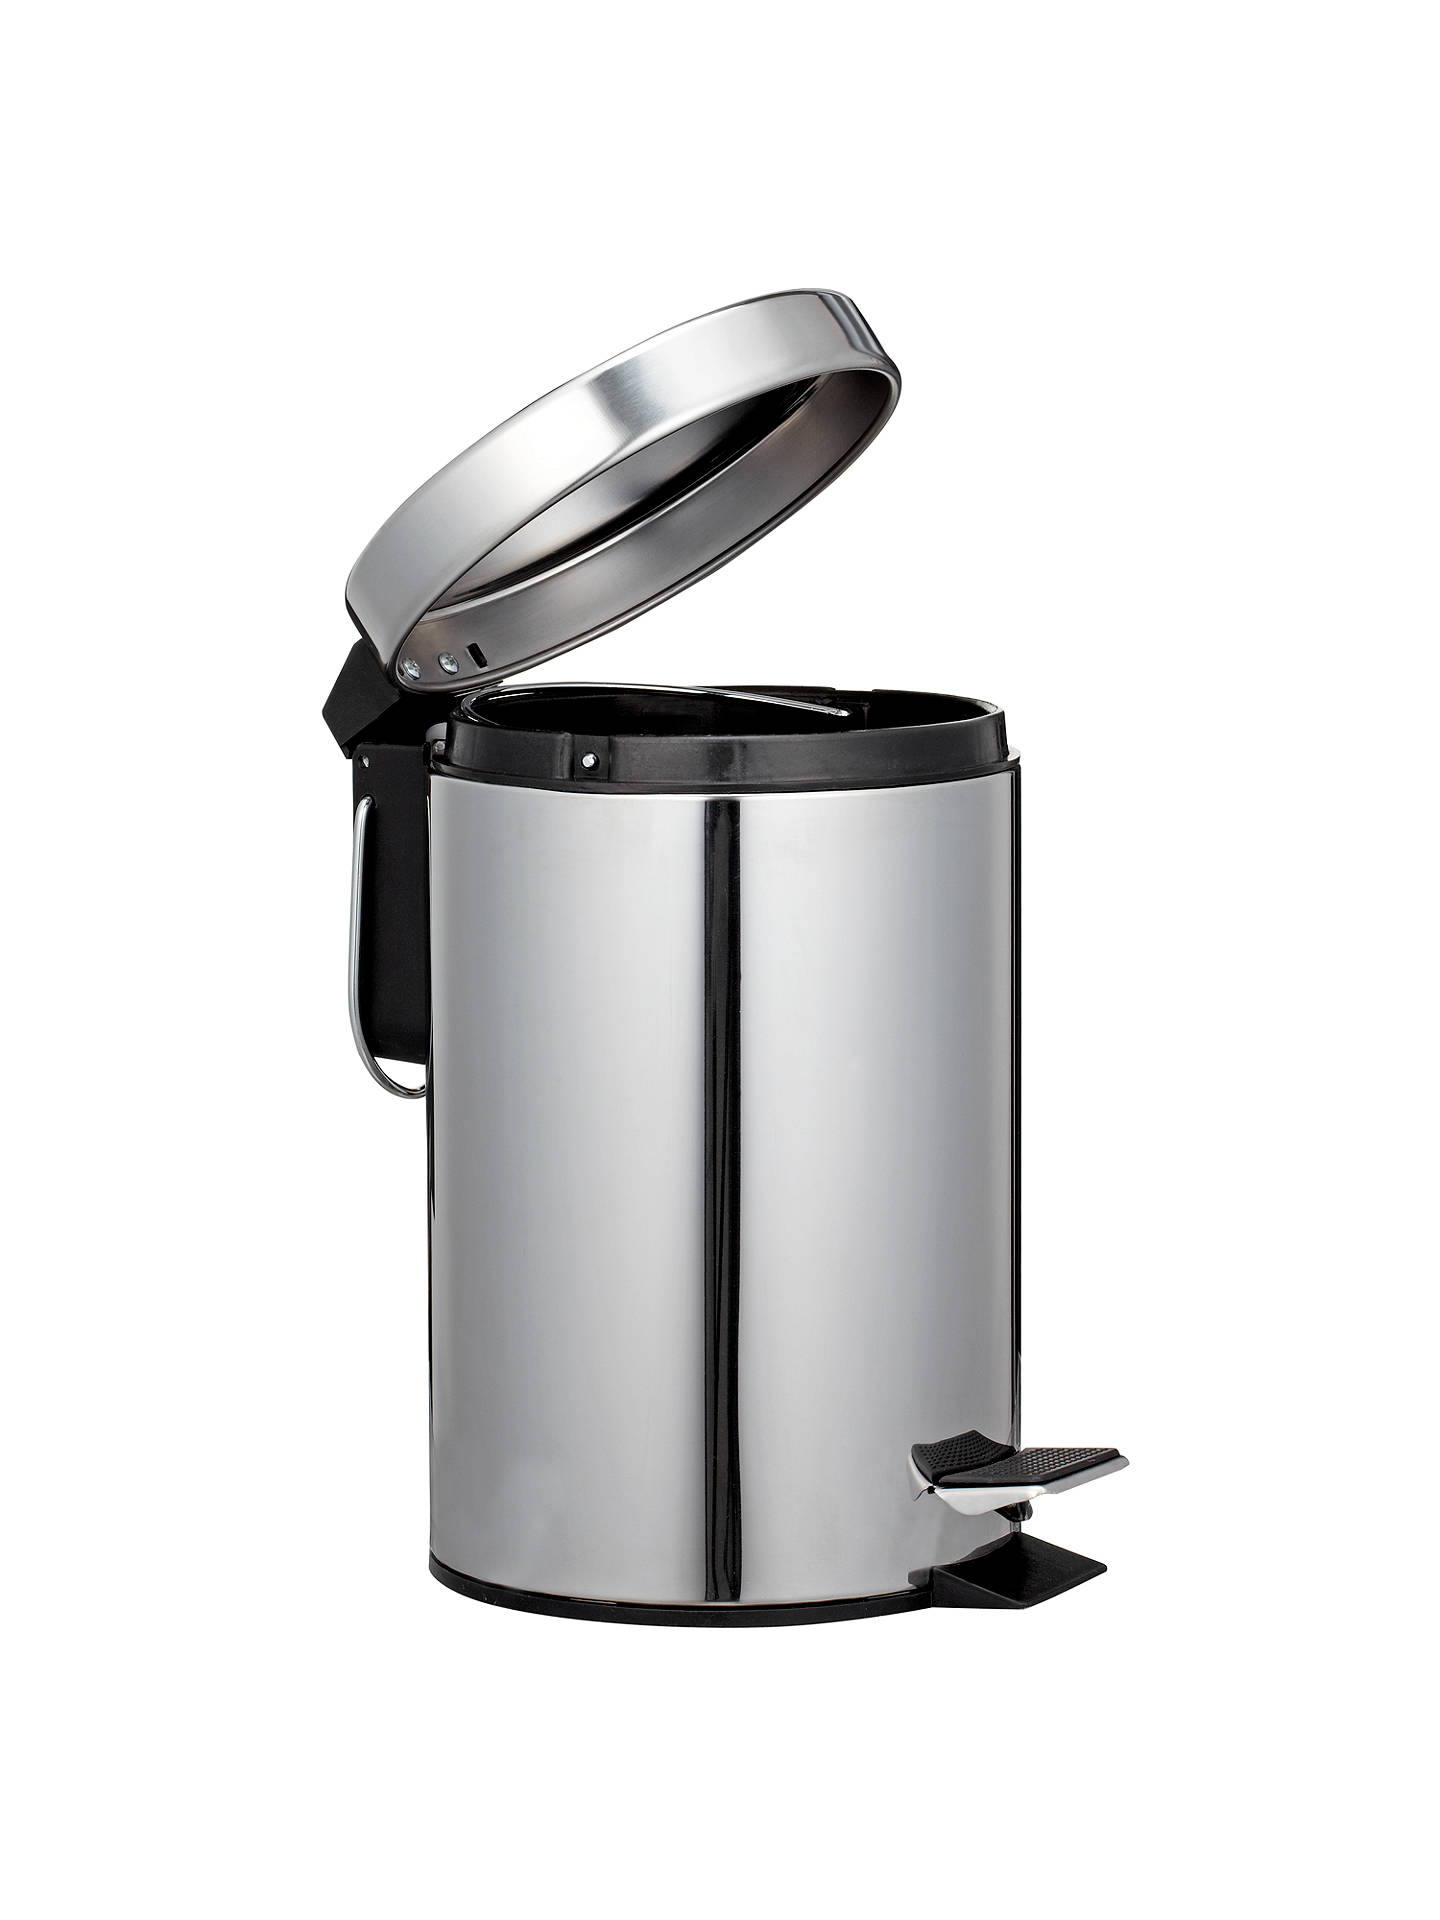 Buy John Lewis & Partners Round Soft Close Pedal Bin, 3L, Stainless Steel Online at johnlewis.com